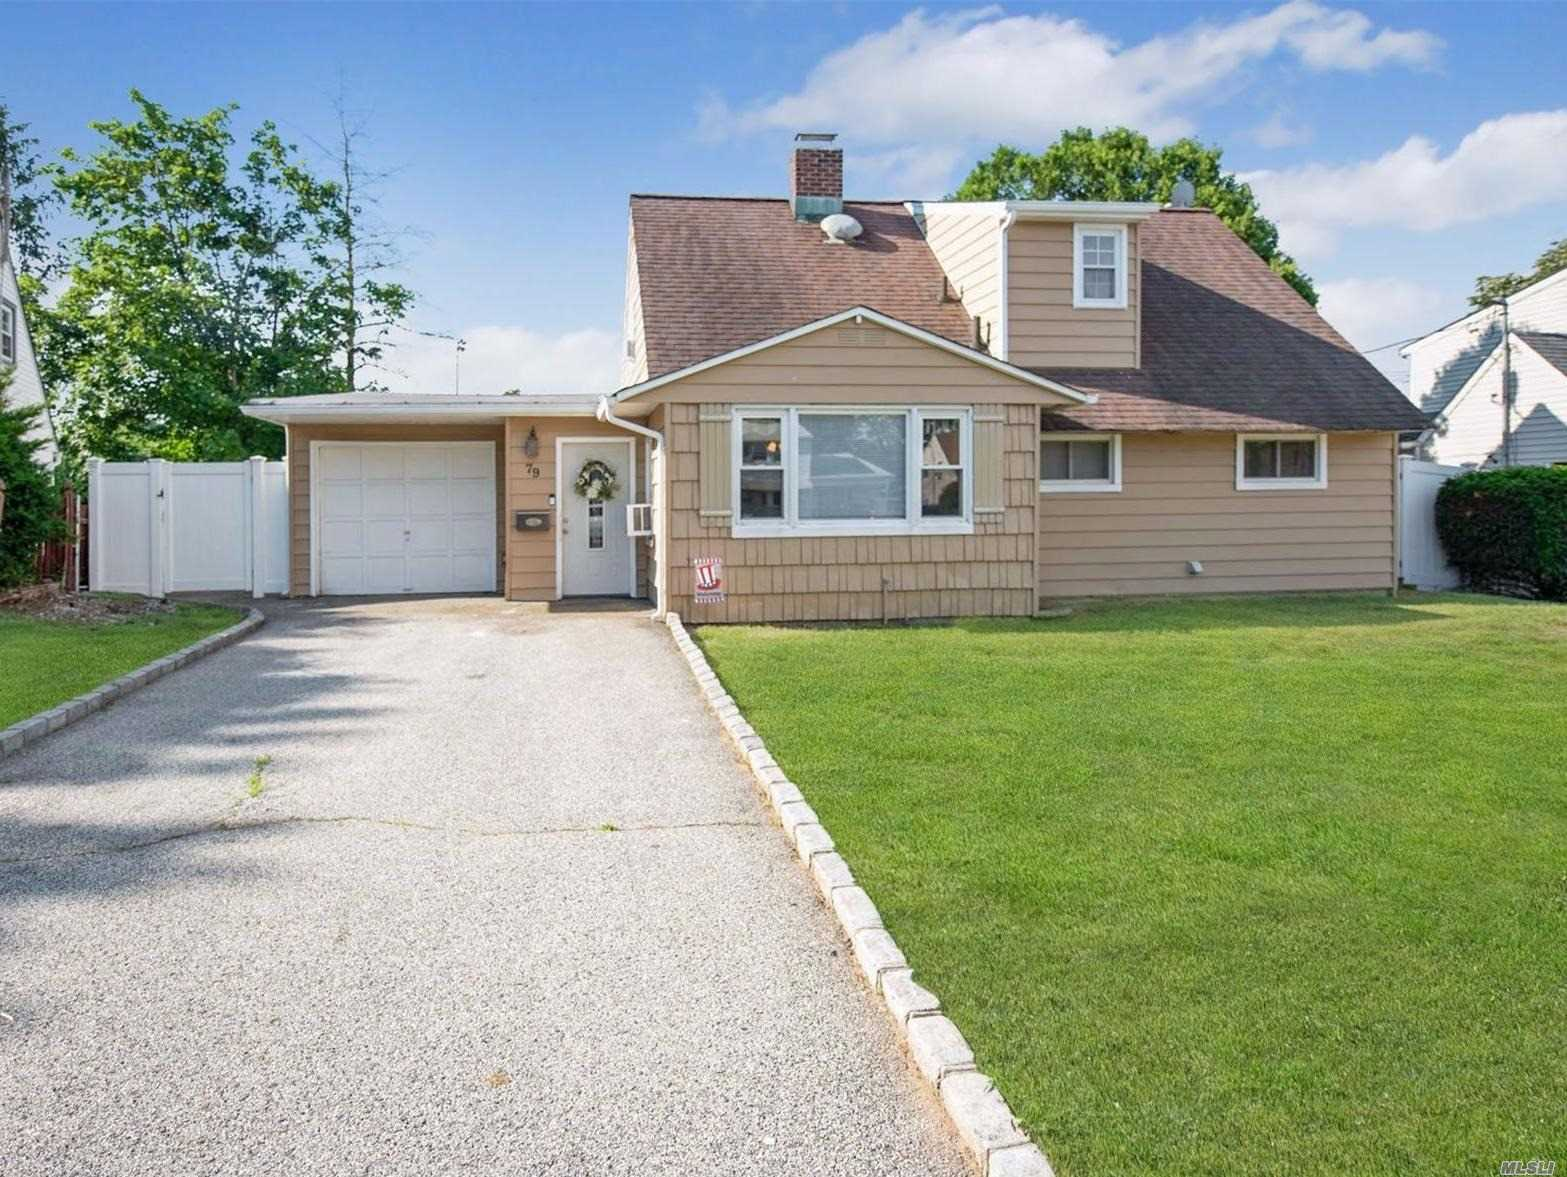 79 Chimney Ln - Levittown, New York